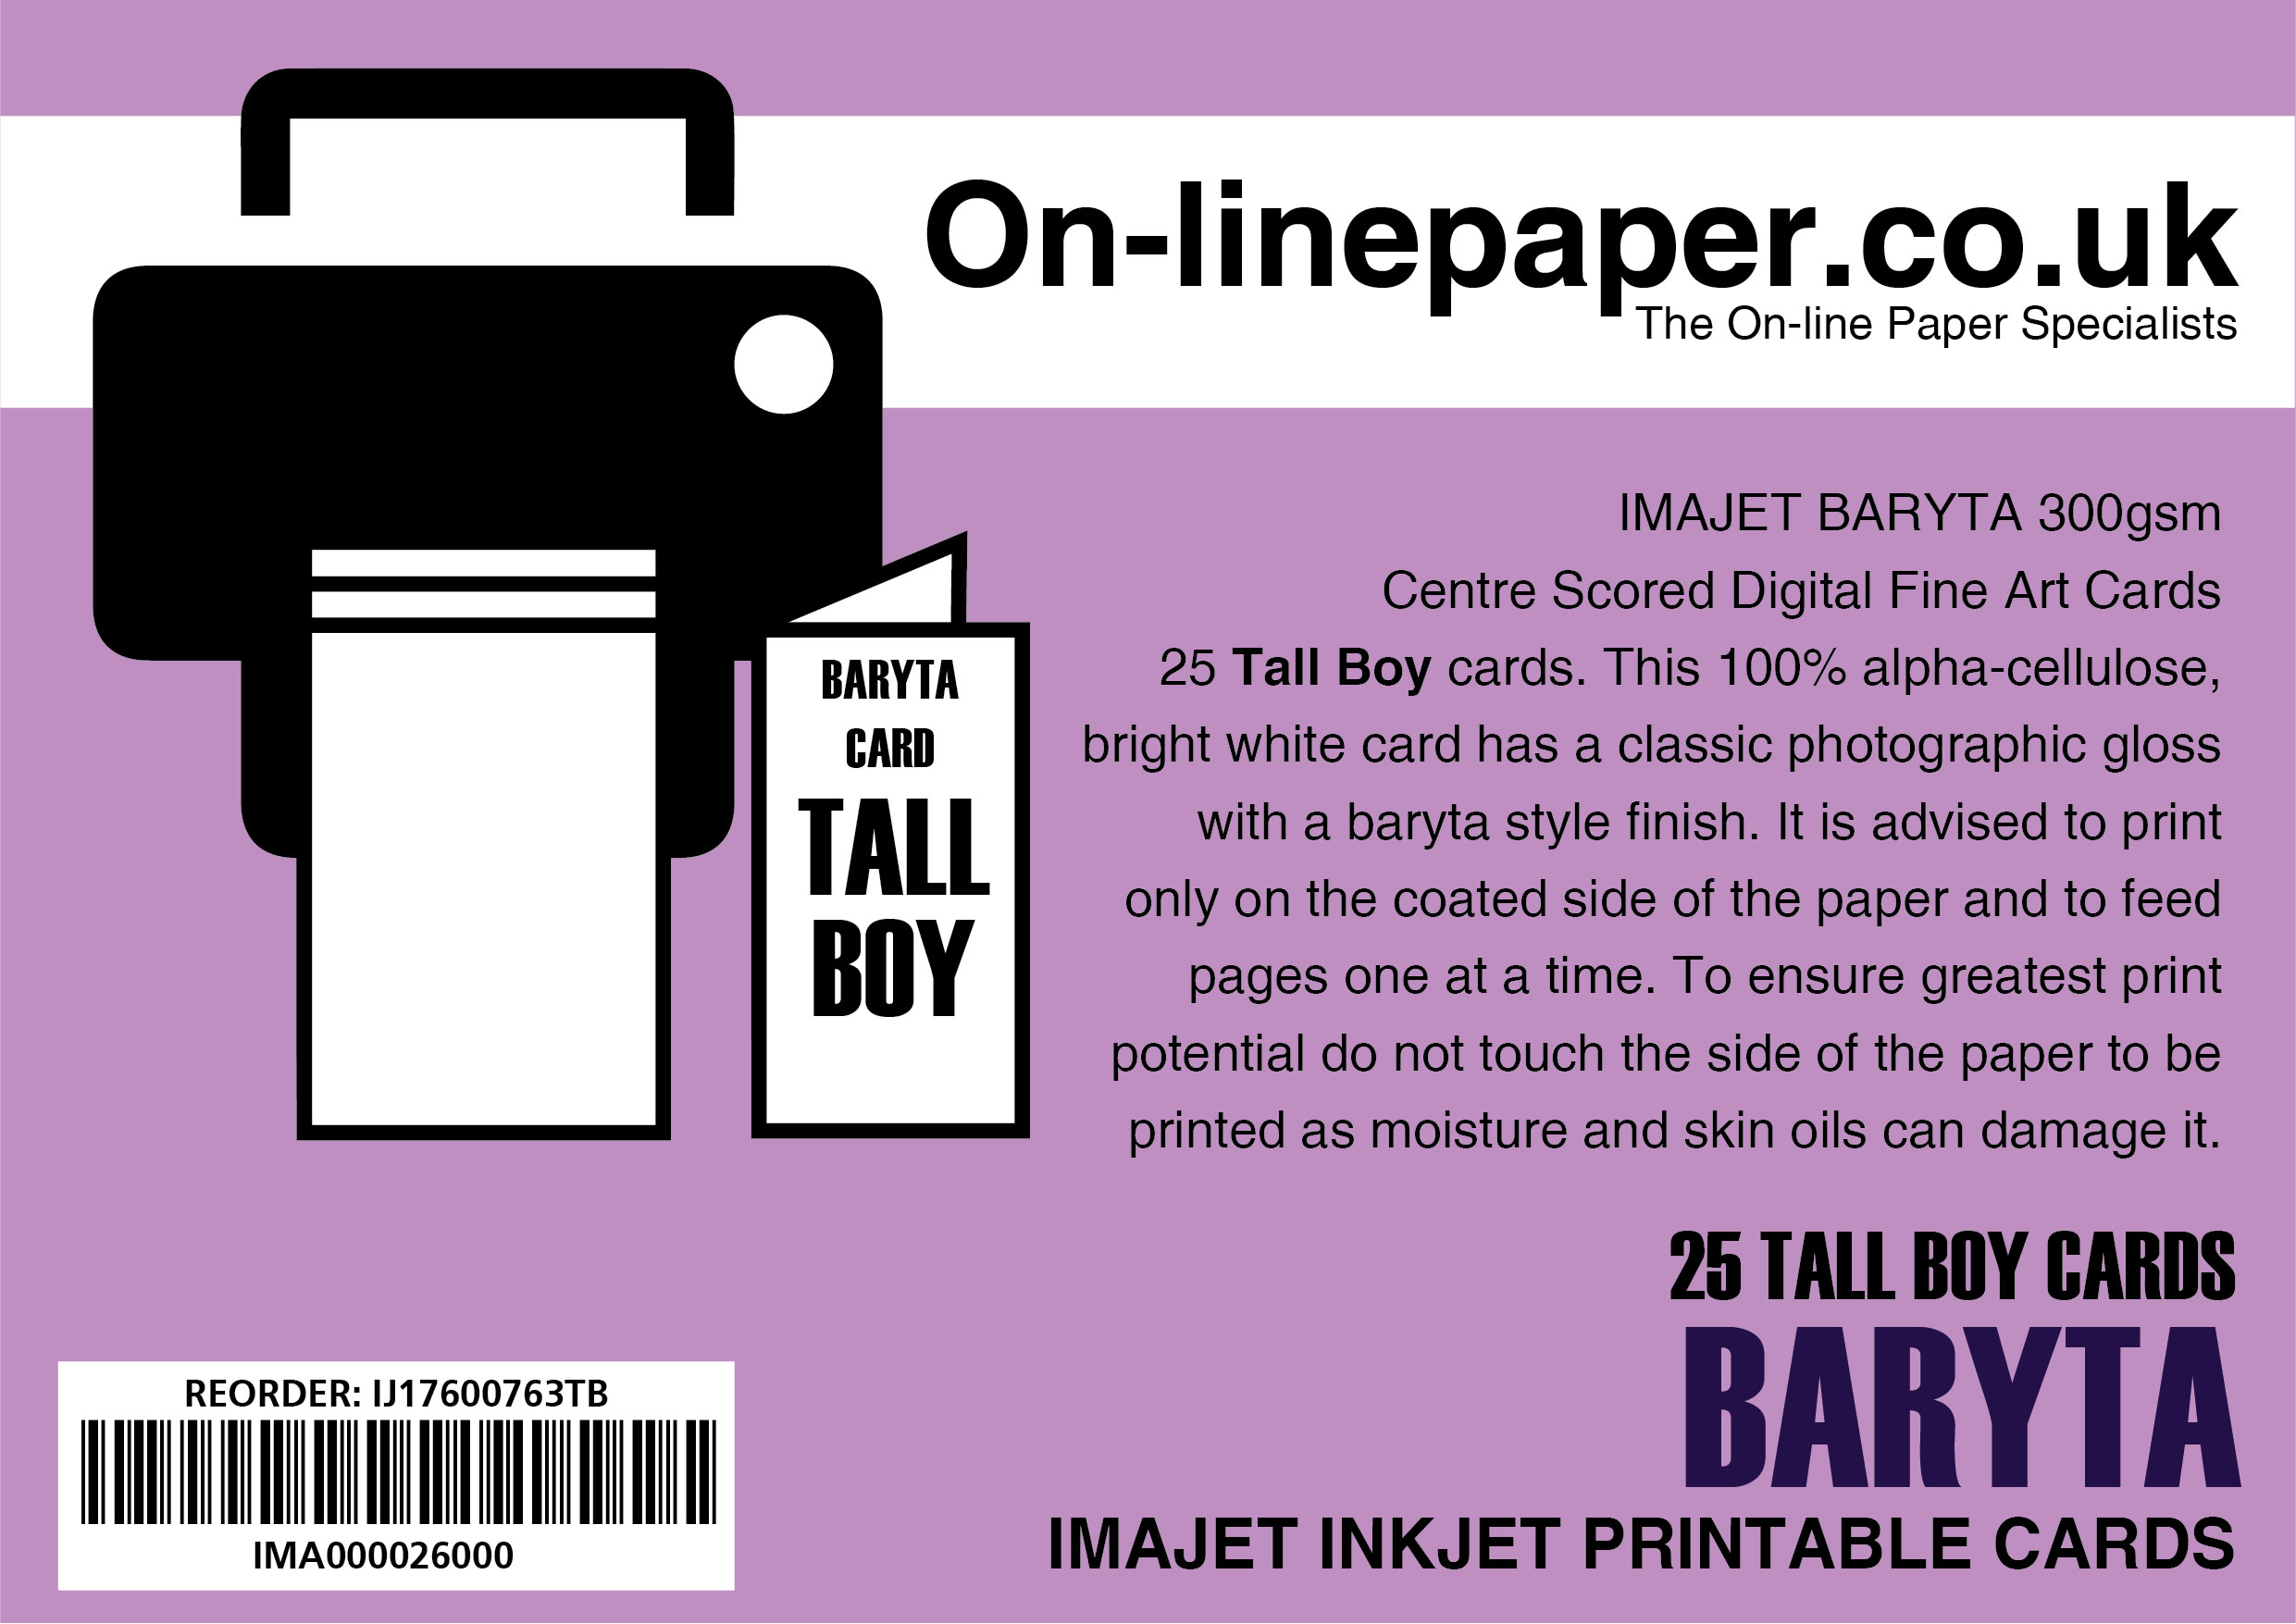 IMAJET BARYTA 300gsm Centre Scored Digital Fine Art Cards 25 x Tall Boy